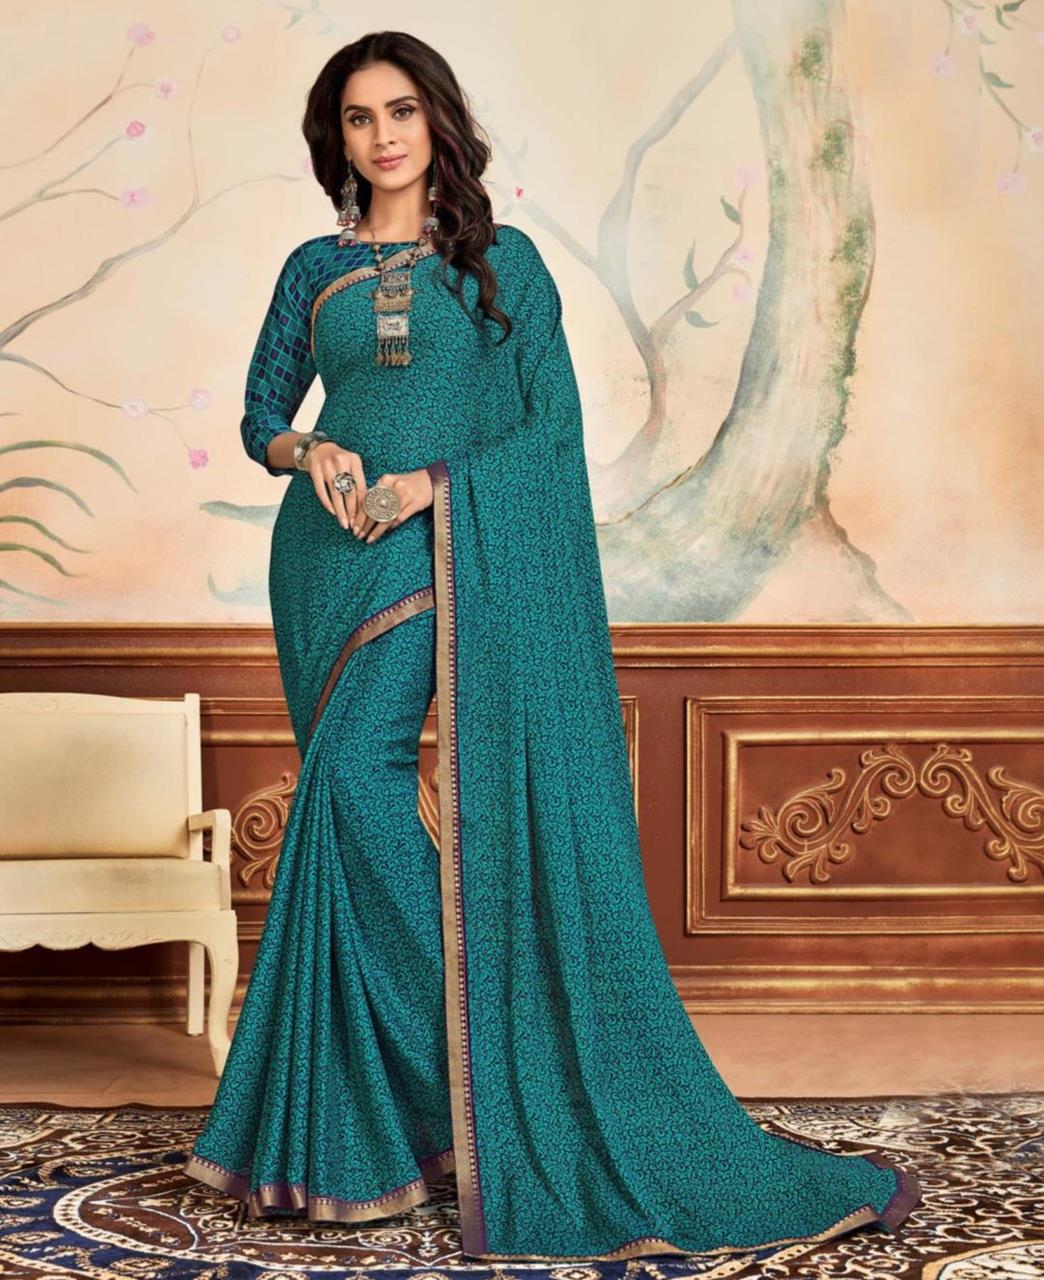 Lace Chiffon Saree in Teal Blue